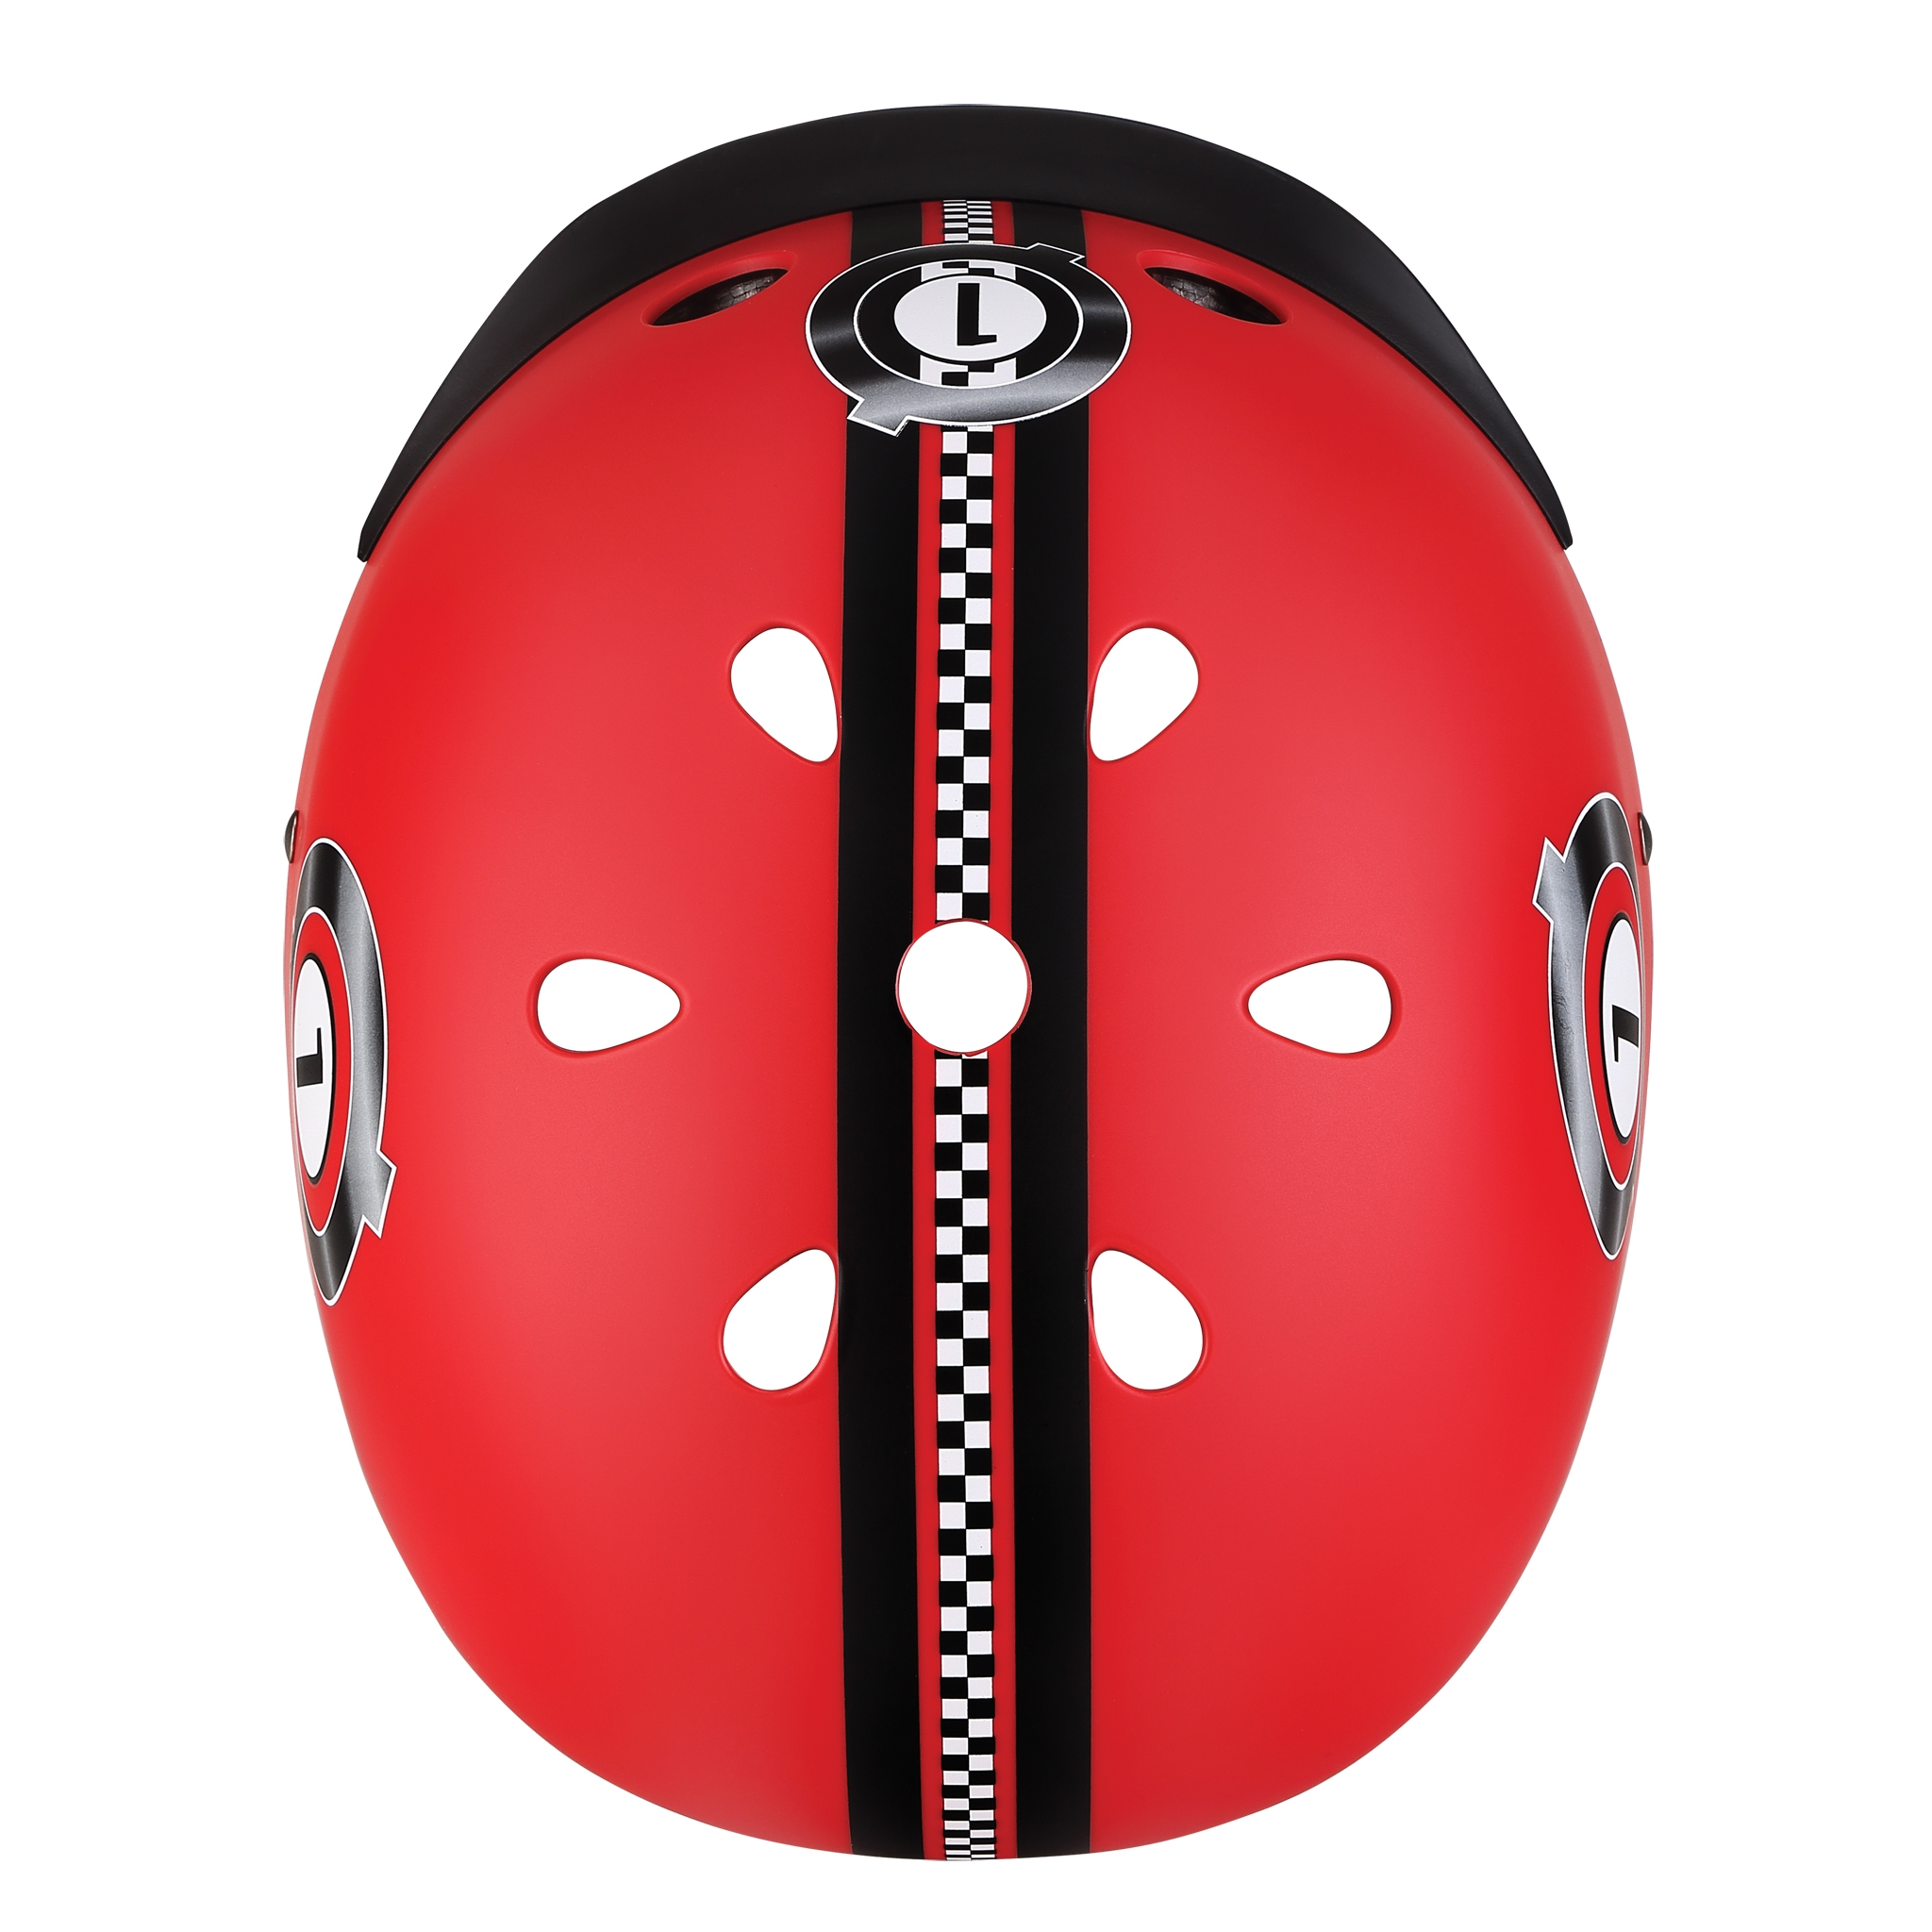 ELITE-helmets-best-scooter-helmets-for-kids-with-air-vents-cooling-system-new-red 2